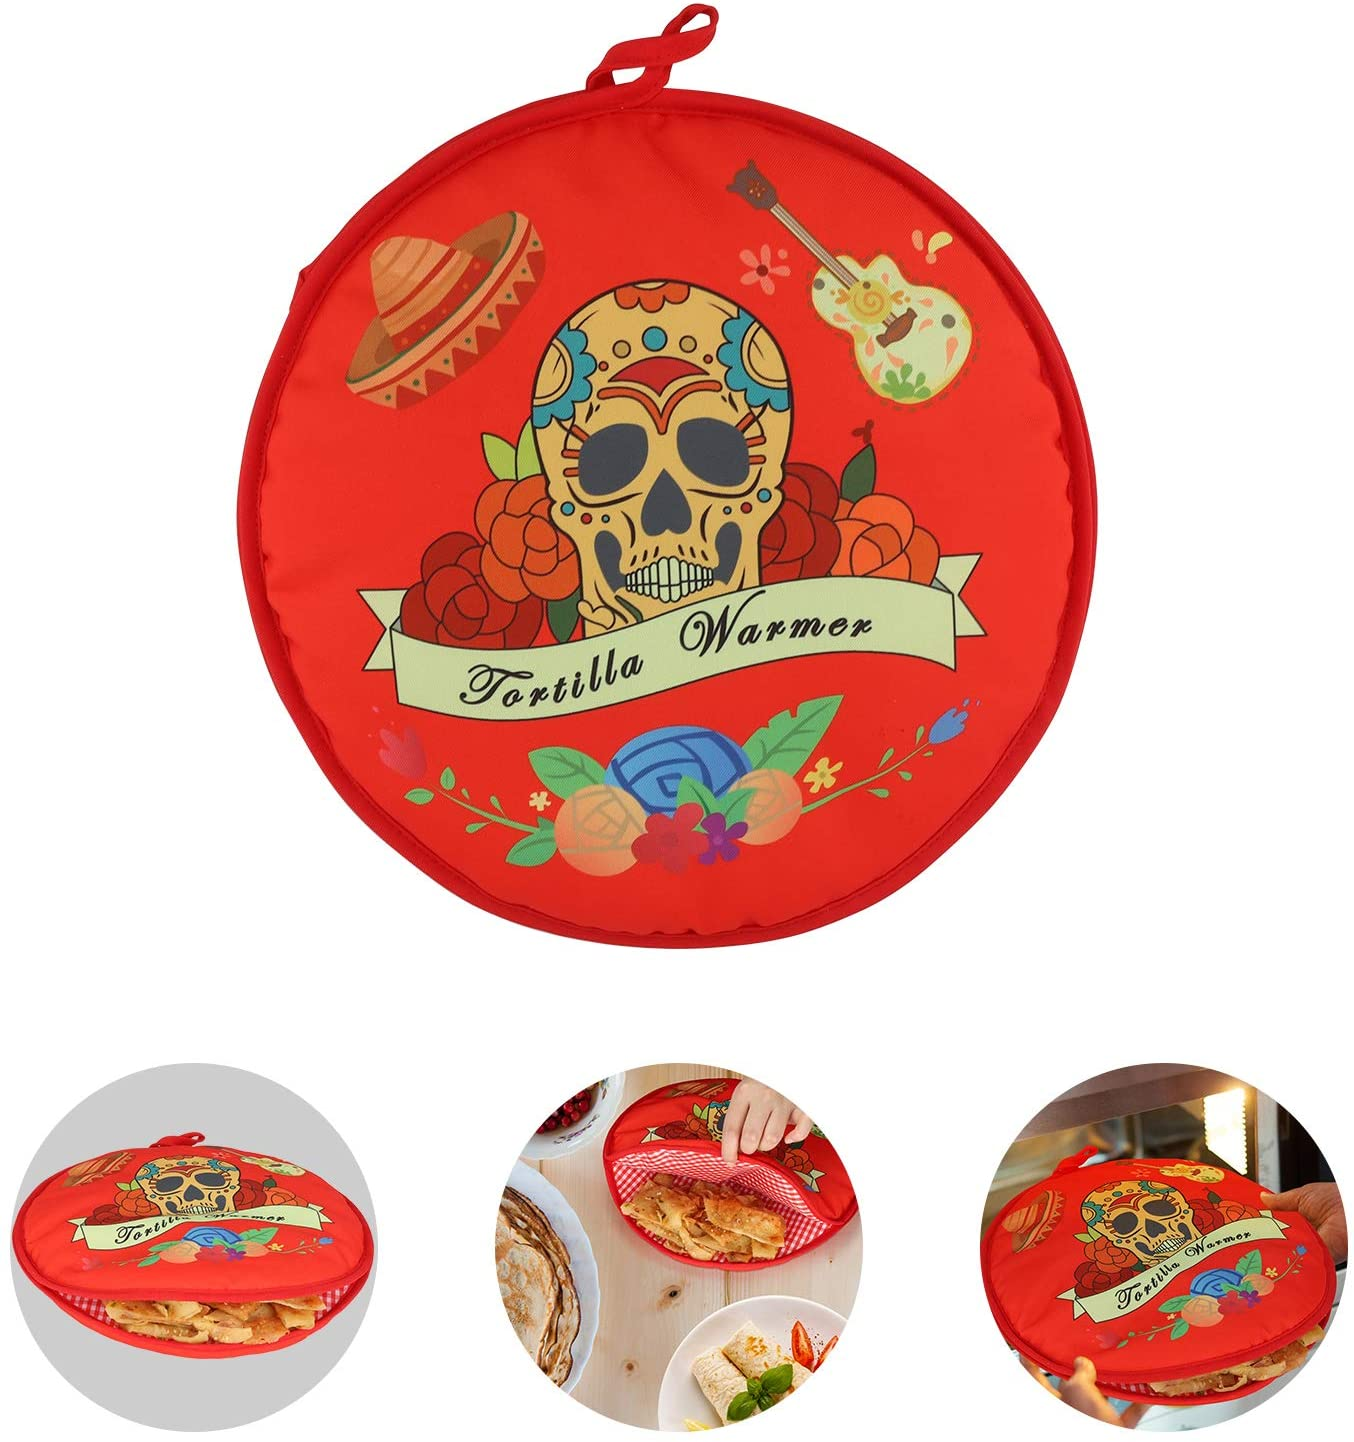 COAWG TWO SIDED Tortilla Warmer 12 Inch Insulated and Microwaveable Fabric Holder Pouch Keeps Tortillas Warm for up to One Hour(Red)